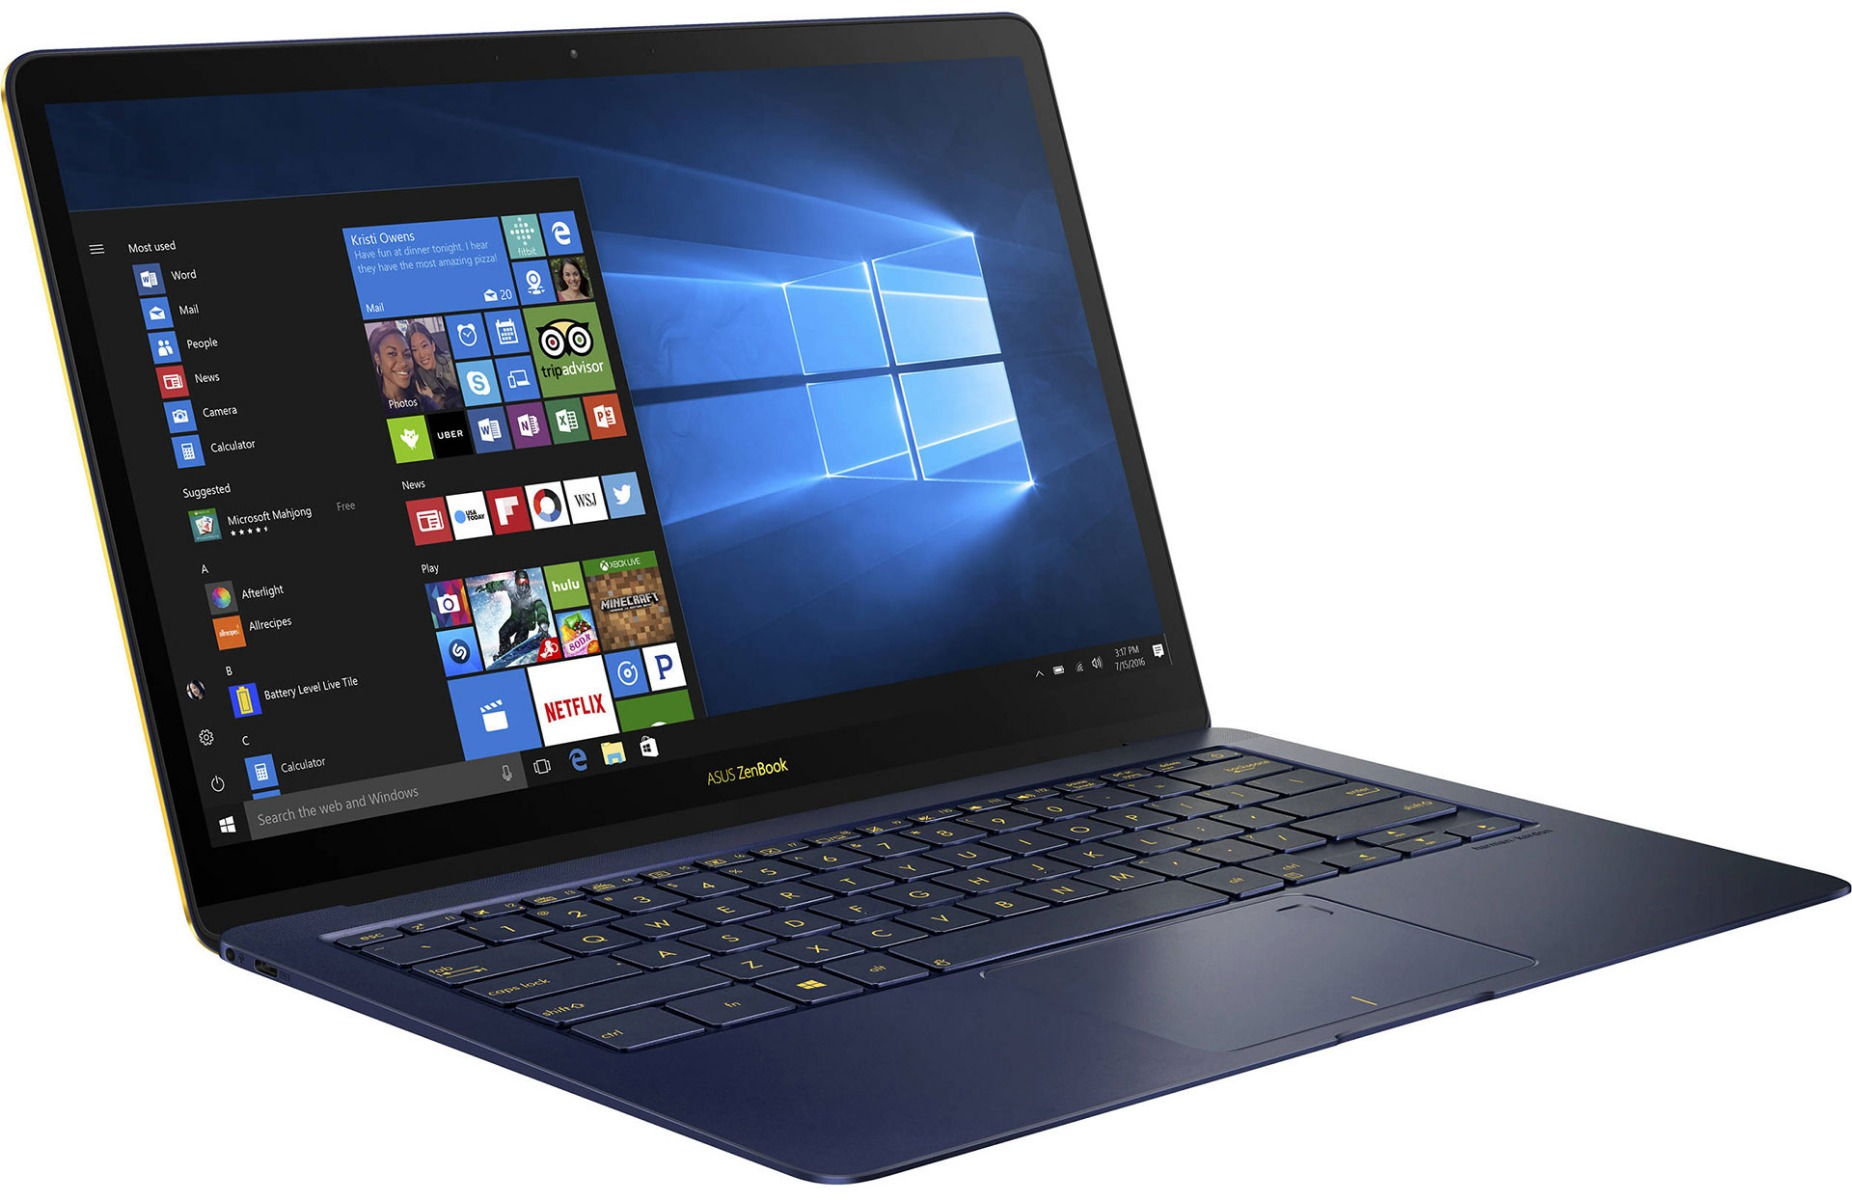 ASUS ZenBook Deluxe 3 UX490UA Review: A Striking, Slim Ultrabook